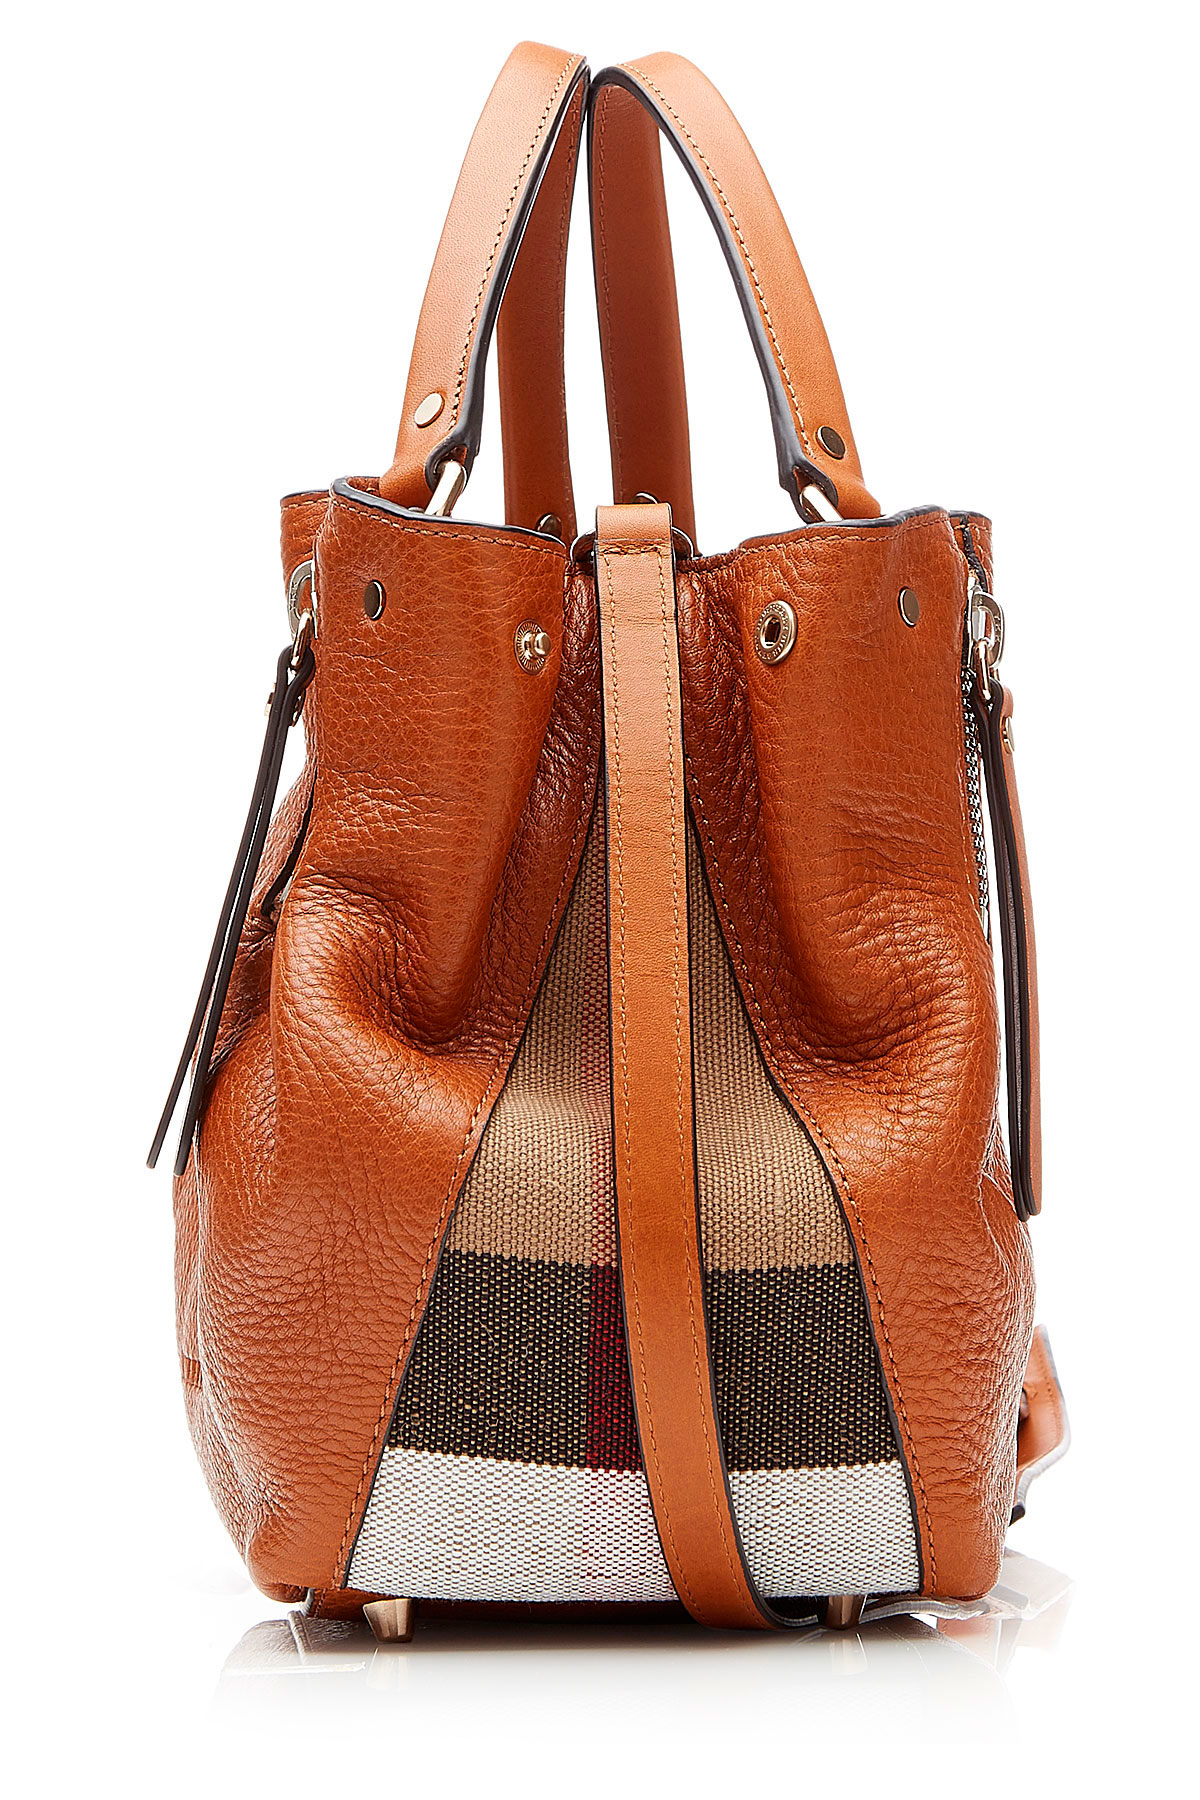 Lyst - Burberry Leather Shoulder Bag With Printed Fabric - Brown in ... a6aa5a3c88963